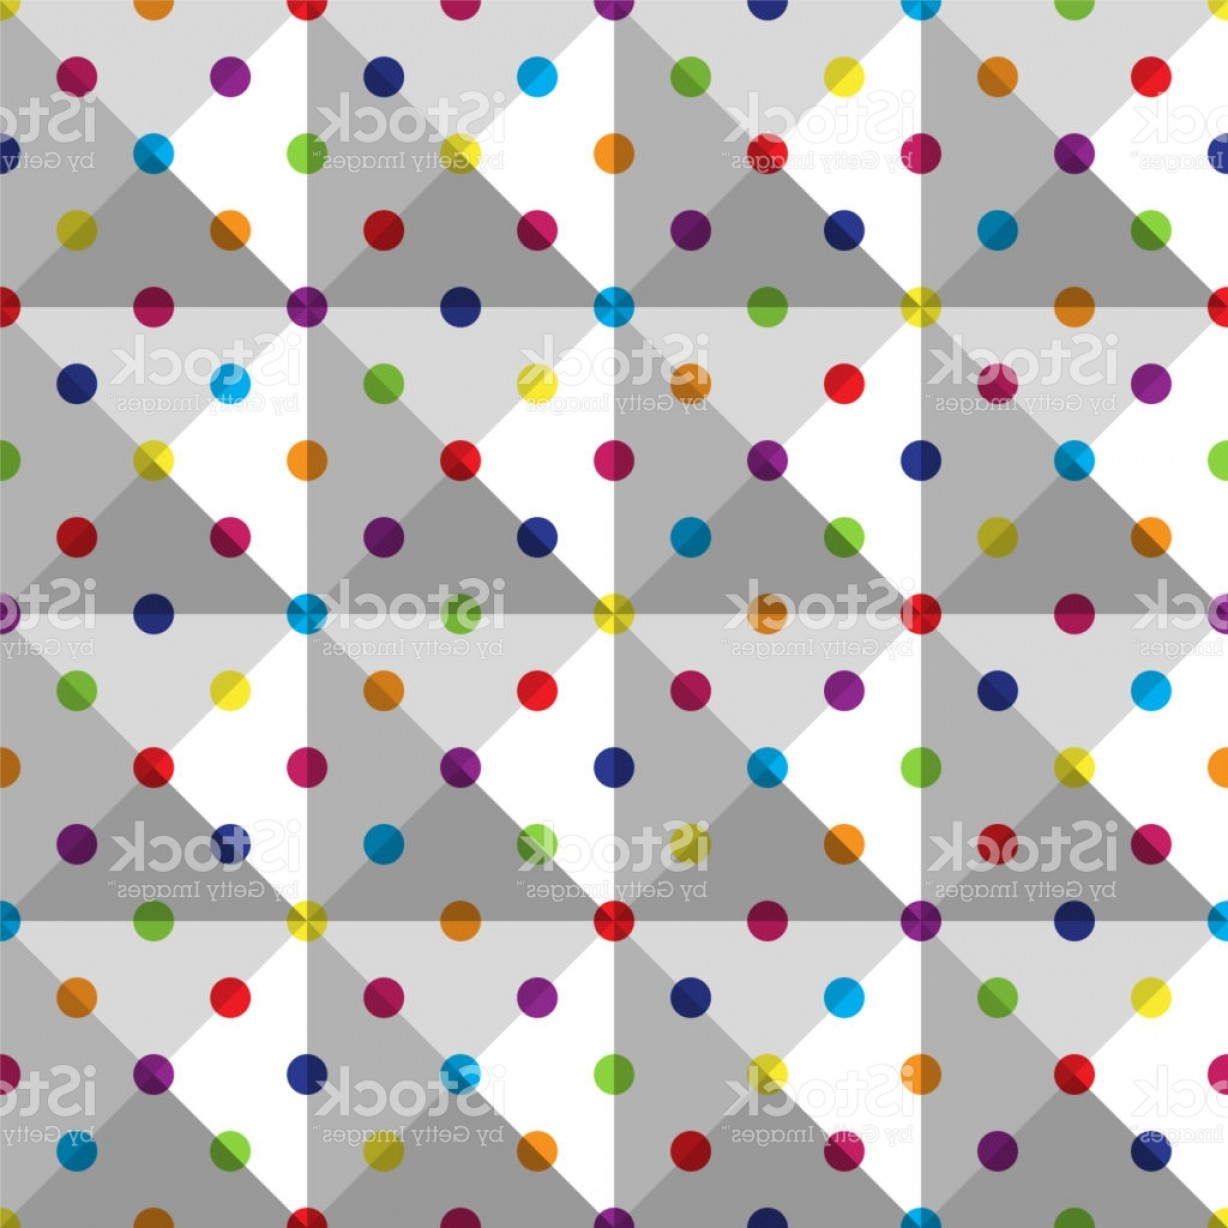 Polka Dot Background Vector Y: Seamless Colorful Polka Dot Pattern On White Background Gm